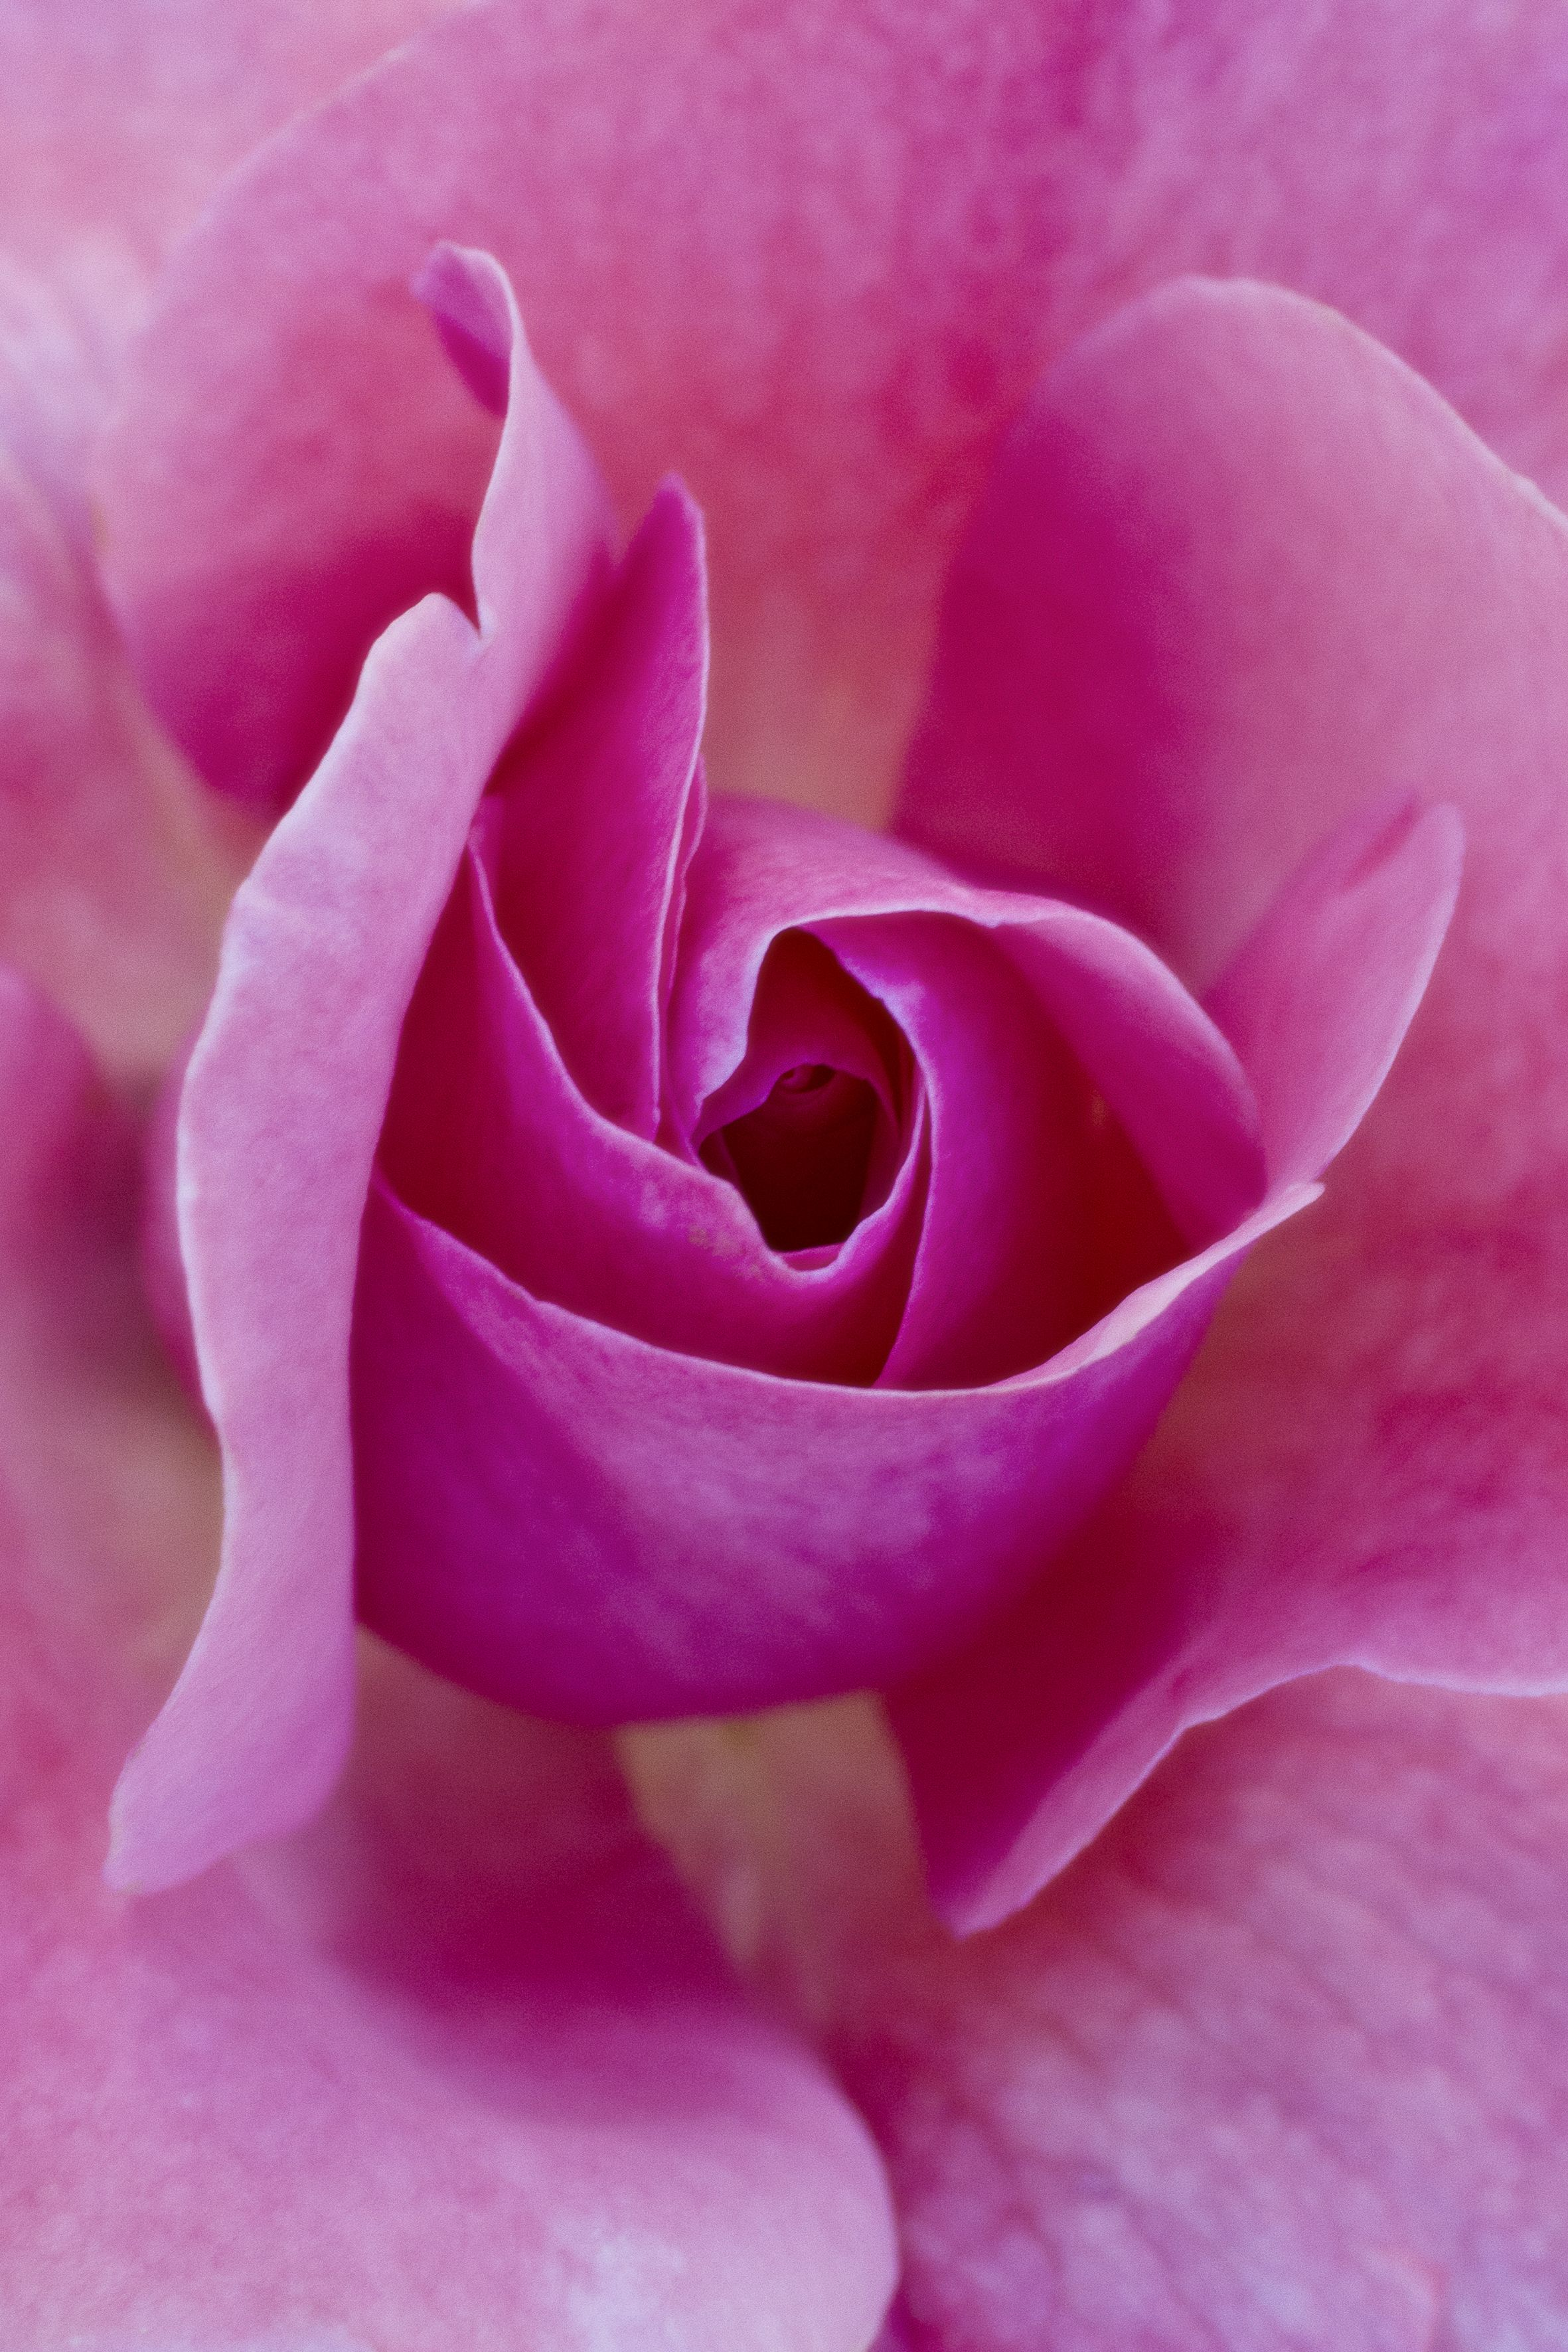 Rose blossom pink rosecolored shades rosecolored